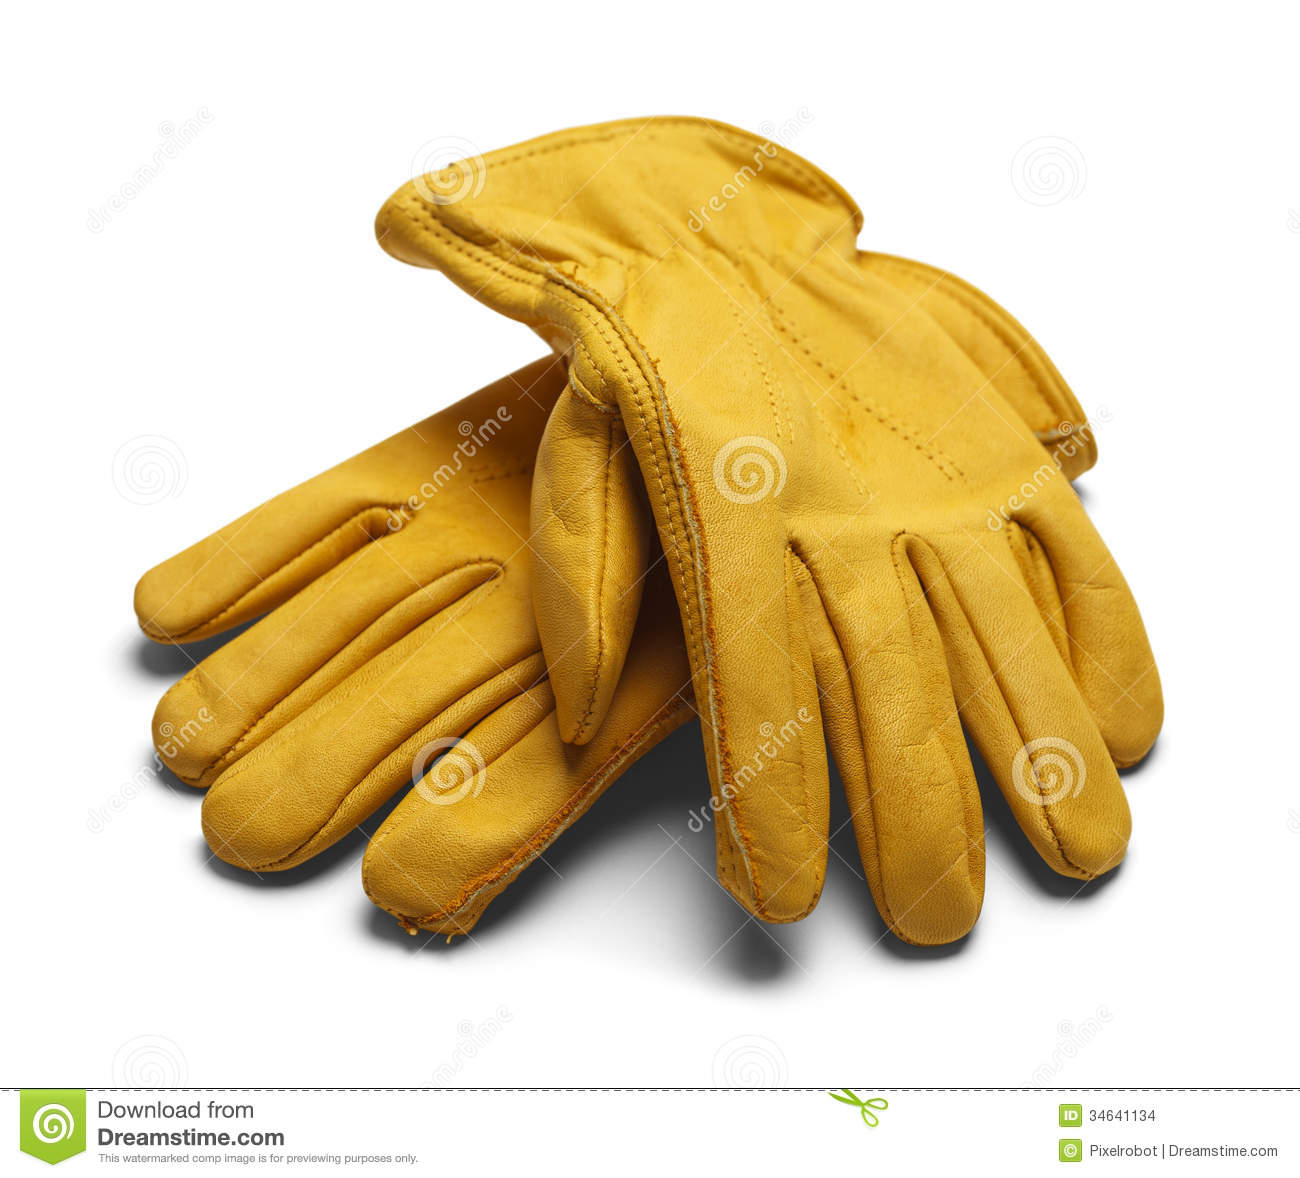 Yellow Construction Work Gloves on White Background.